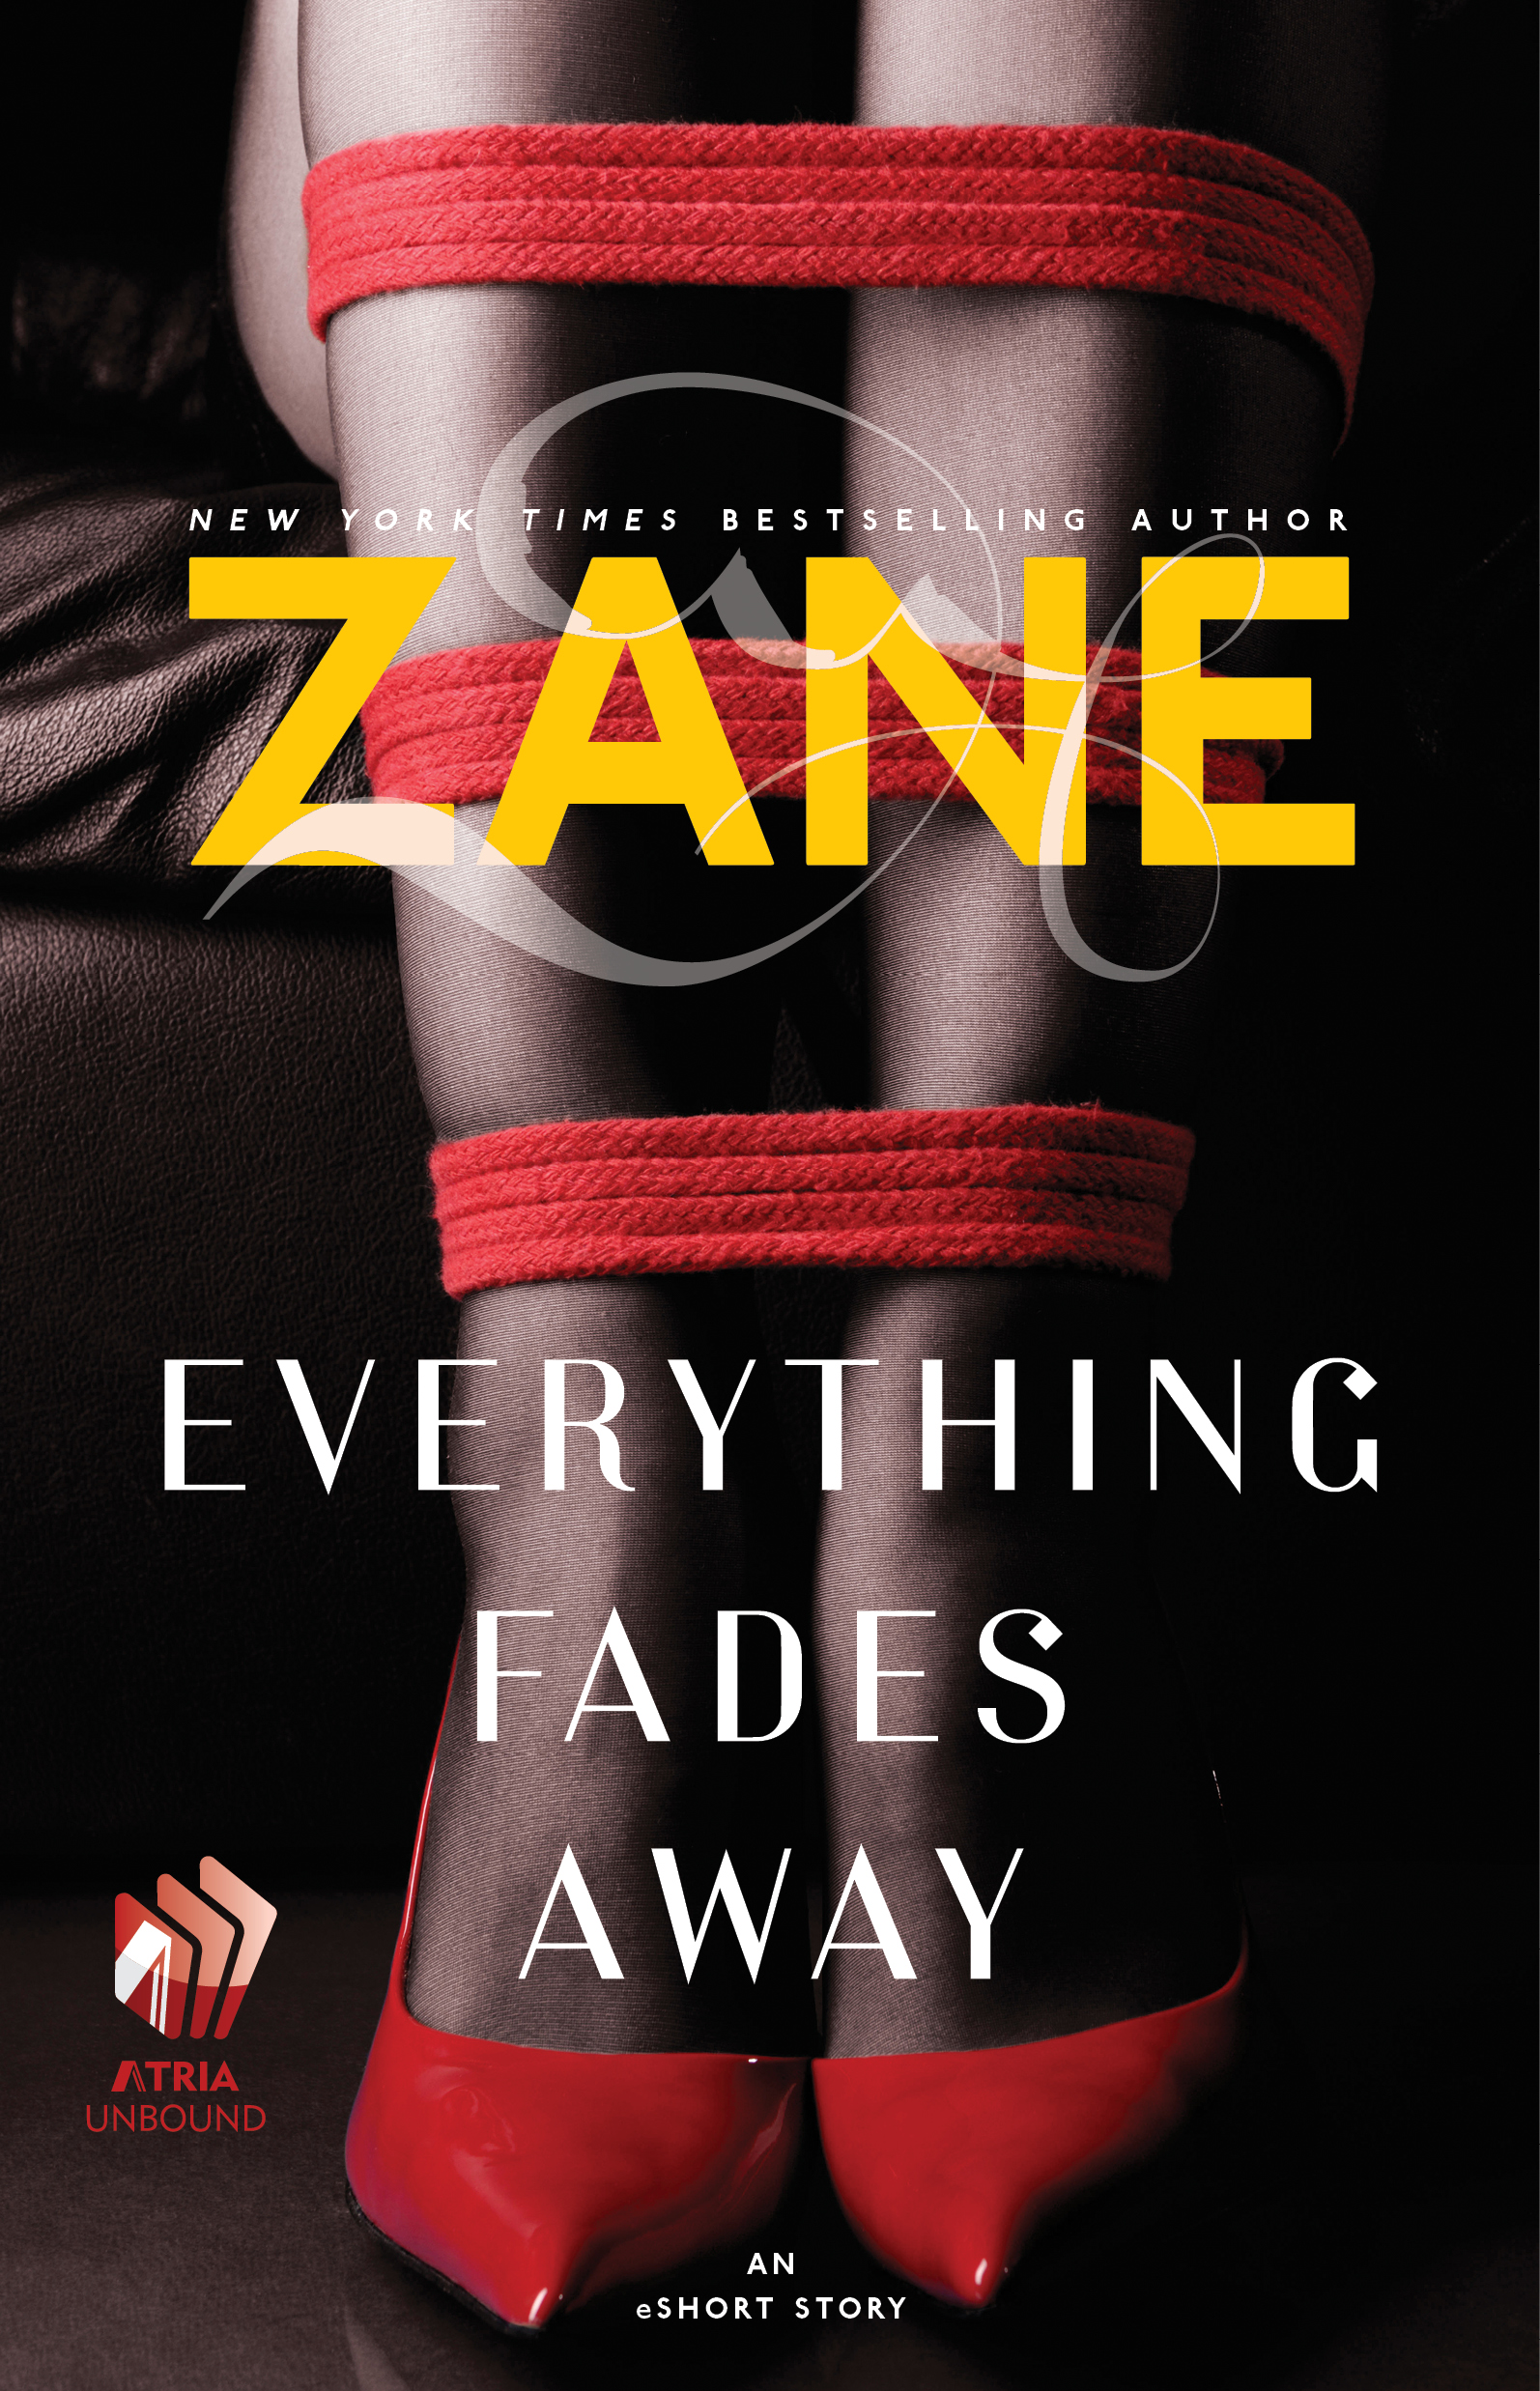 Zane's Everything Fades Away